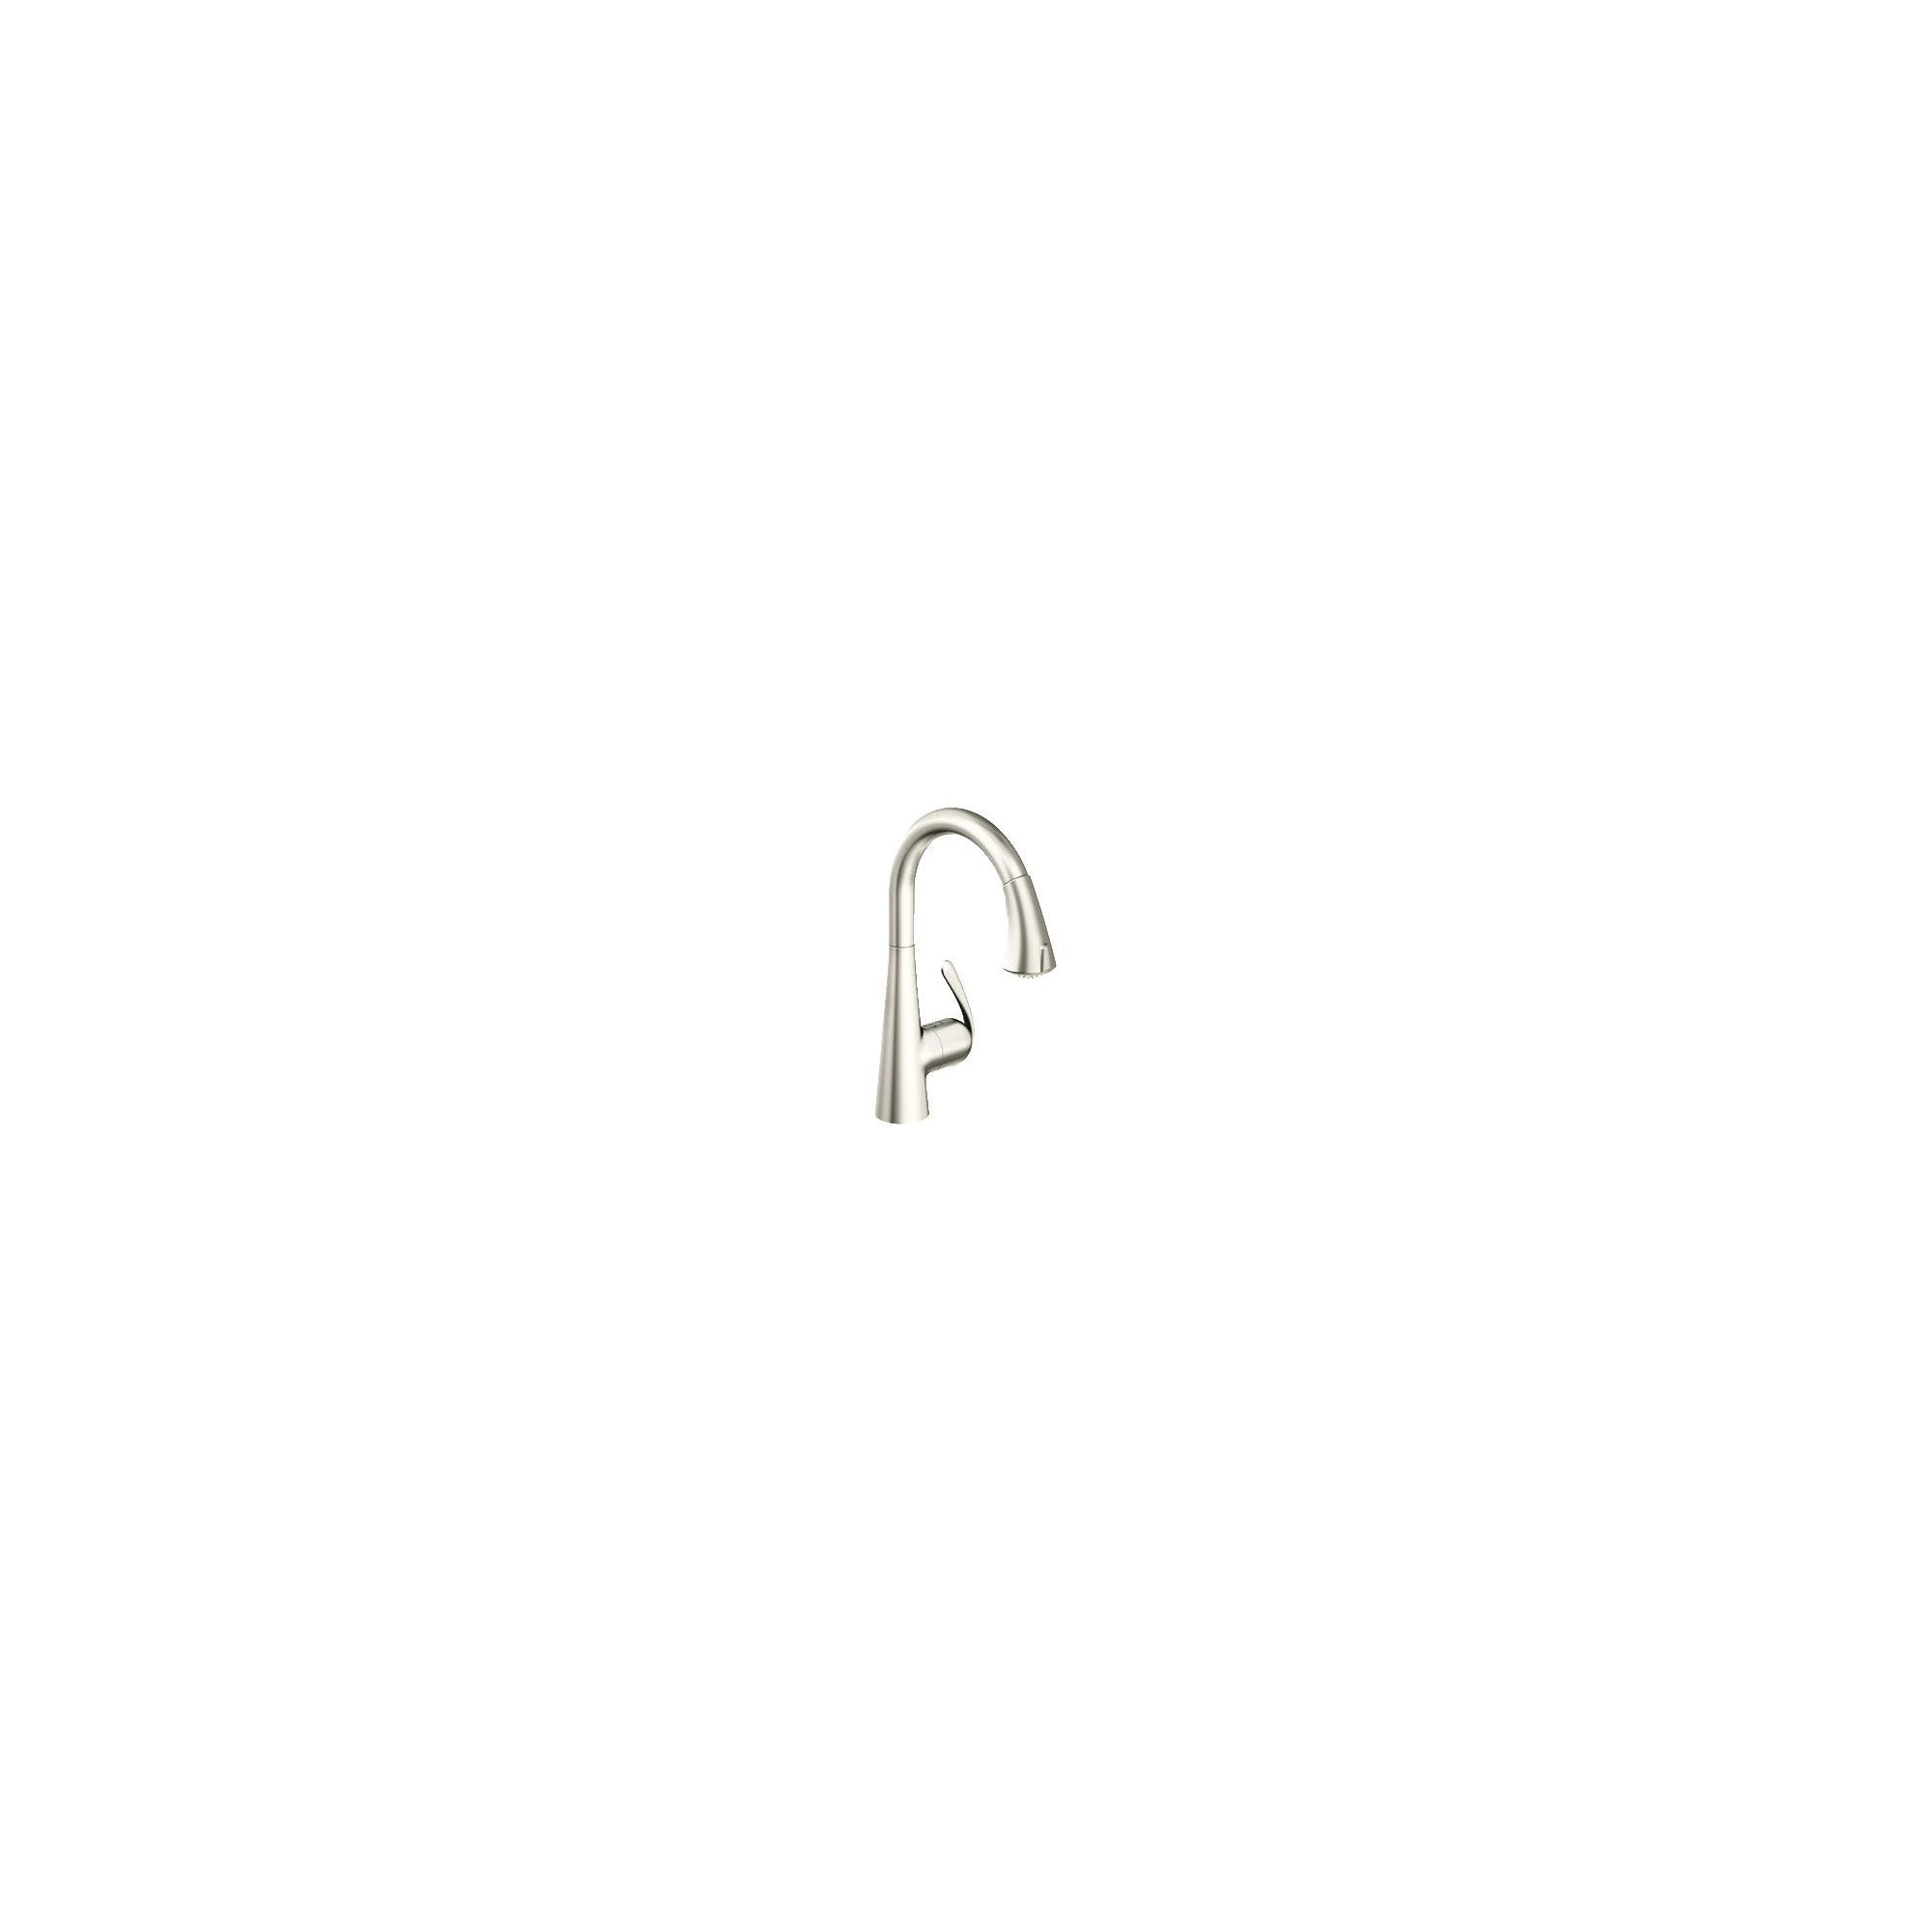 Grohe Zedra Mono Sink Mixer Tap, Single Handle, RealSteel at Tescos Direct